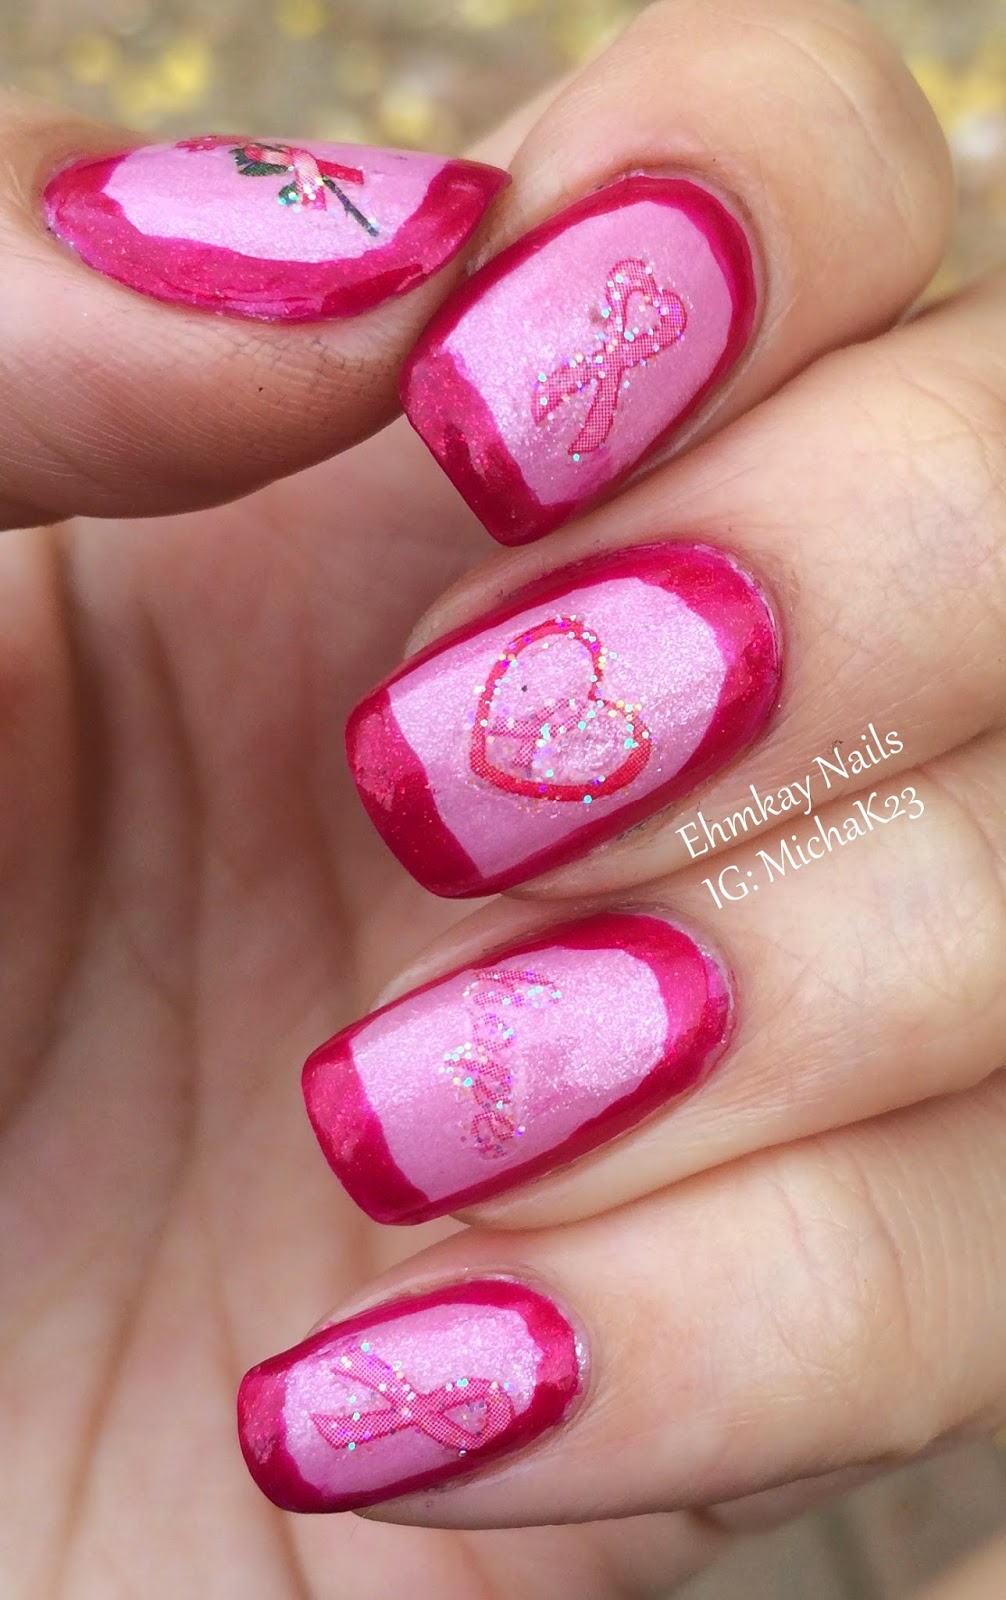 Ehmkay Nails Breast Cancer Awareness Nail Art With Joby Decals